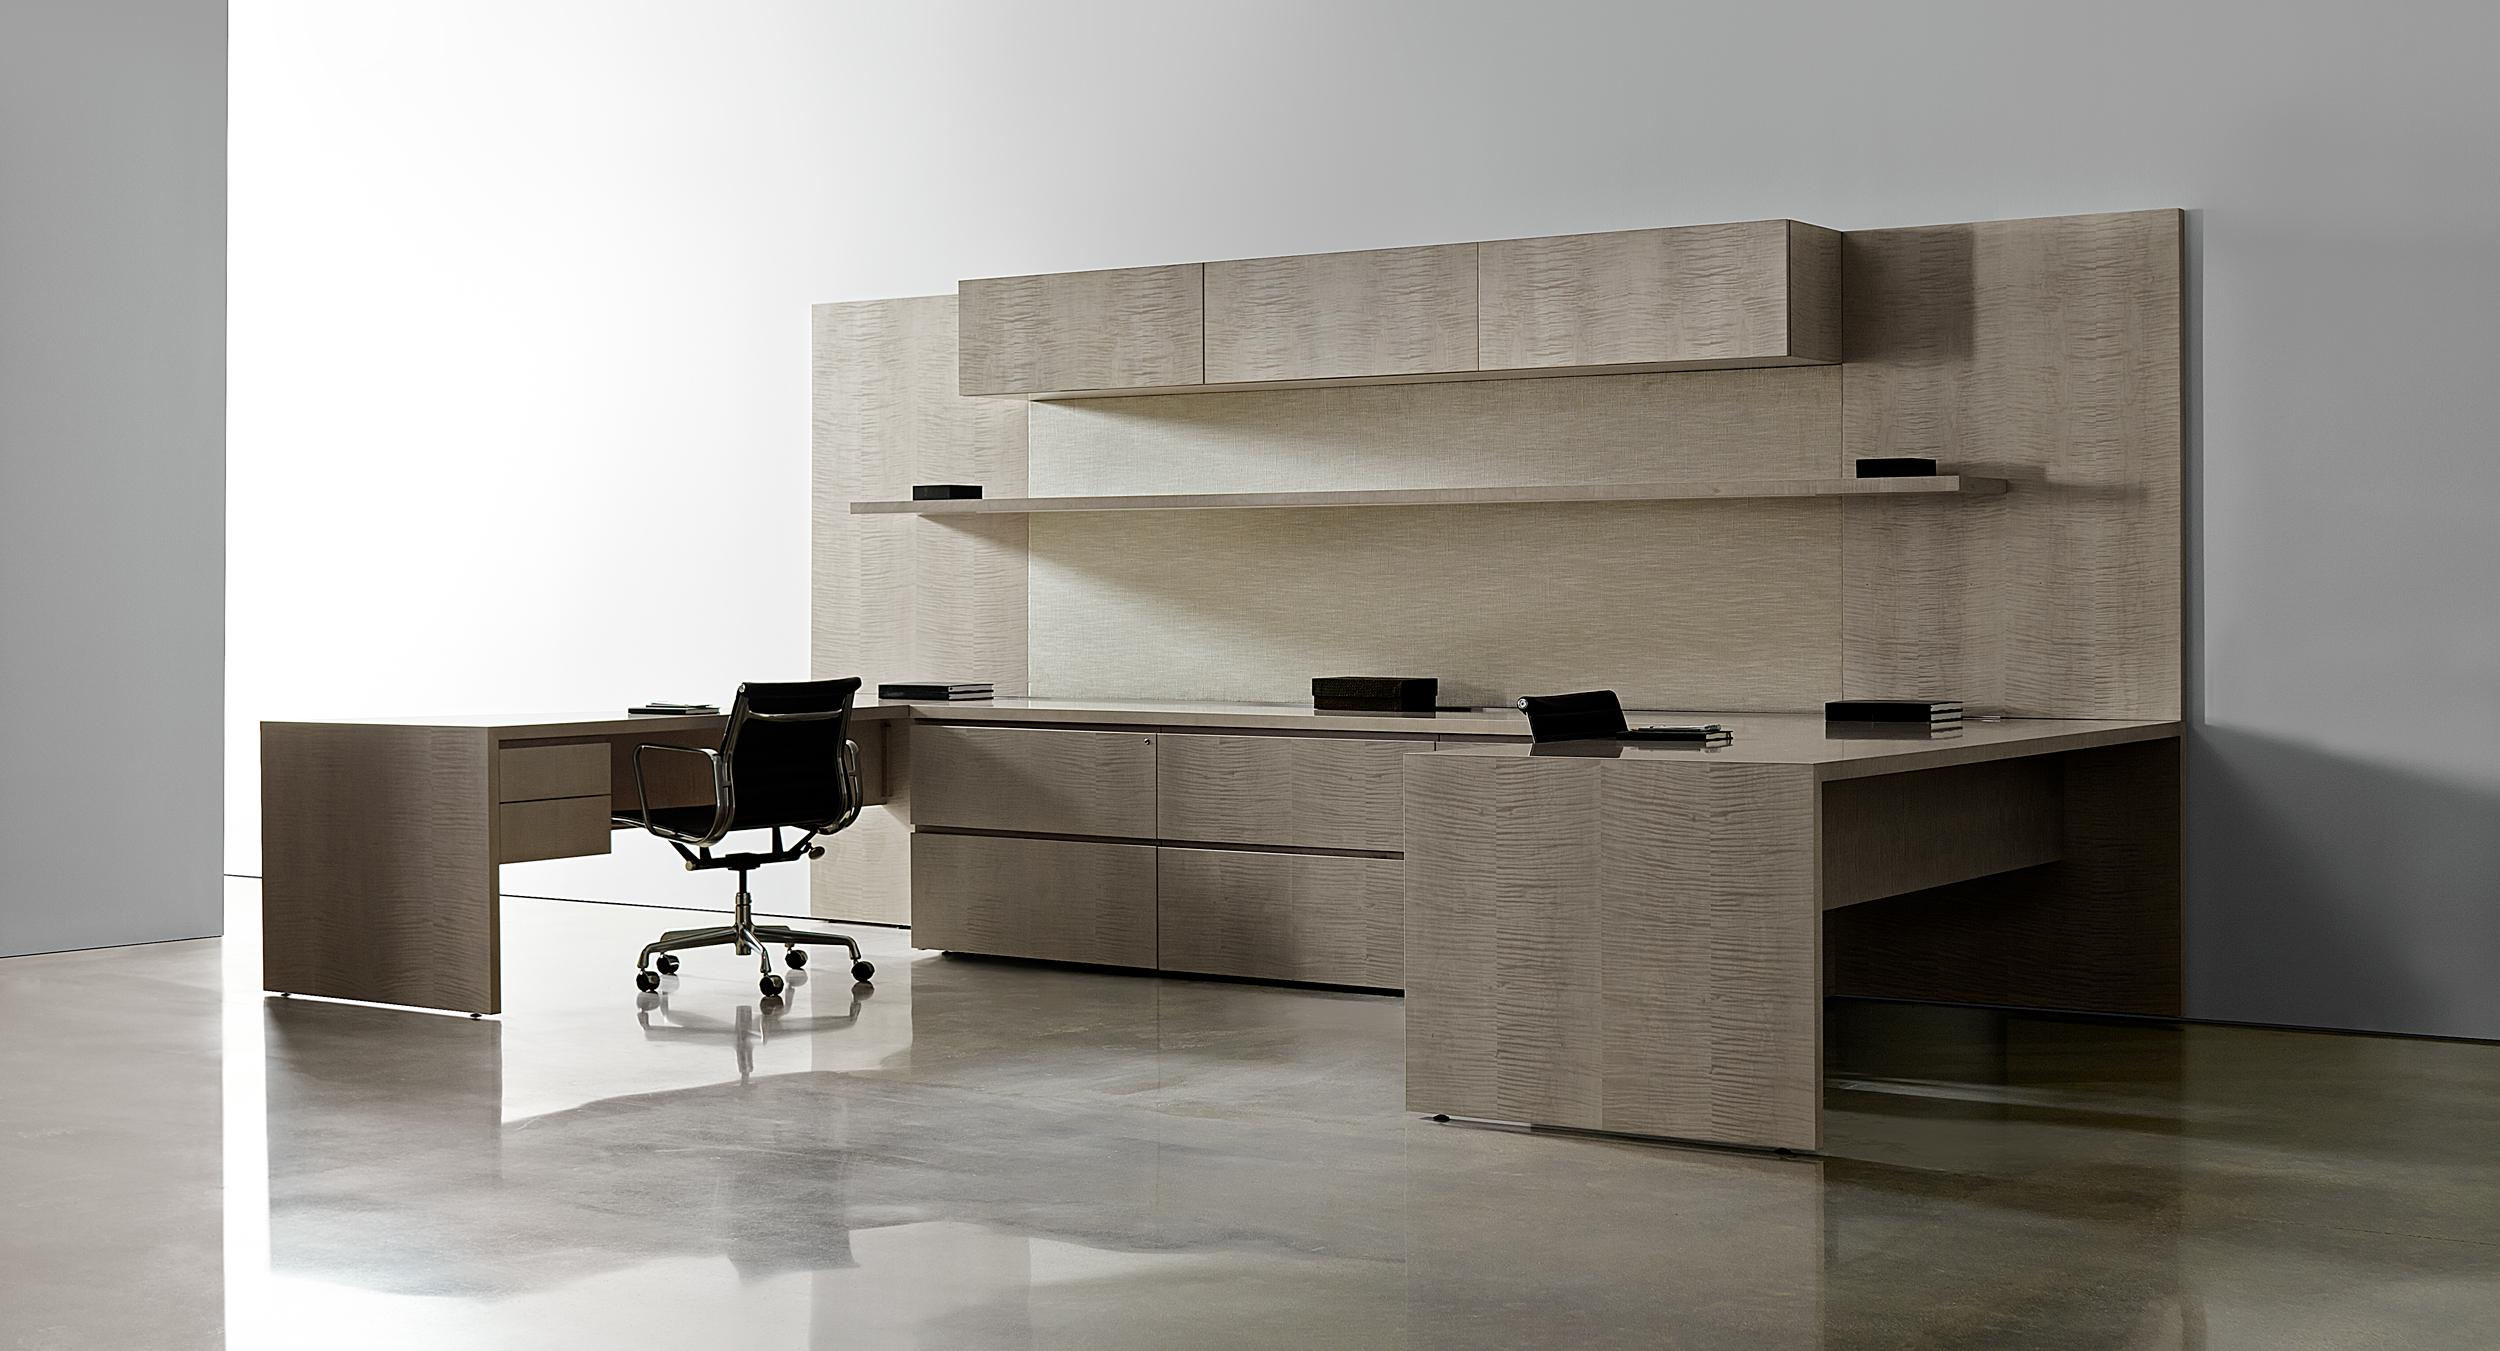 New Millennia features continuous open shelving, minimalist closed storage, and desking with raised storage and mitered joinery.